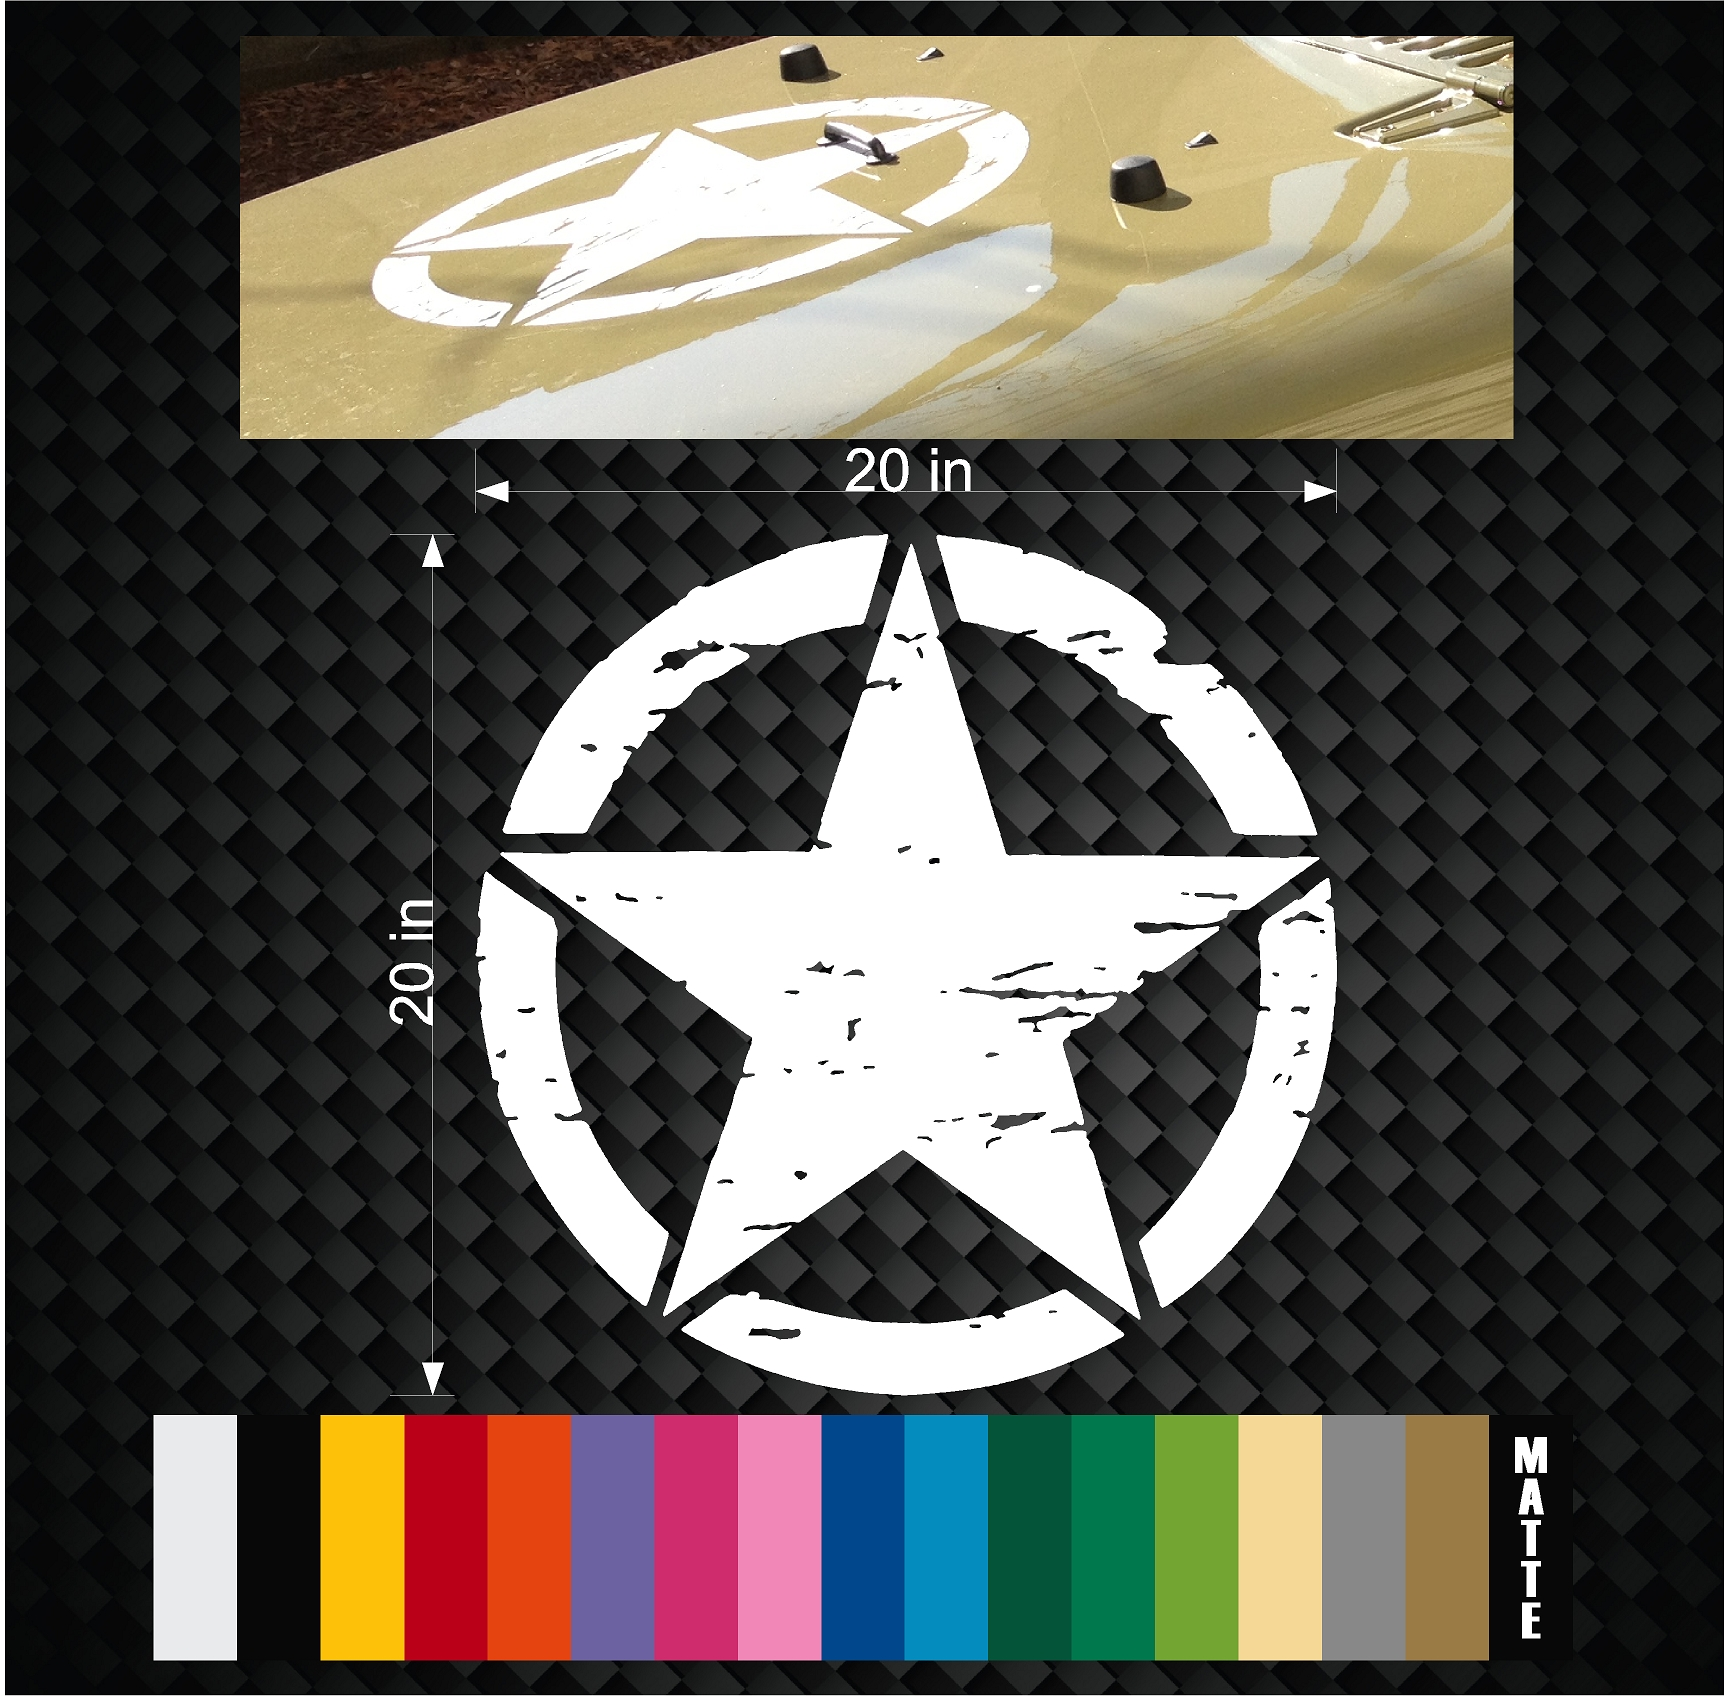 Military Jeep Wrangler Distressed Star Hood decal 20″ TJ JK Rubicon Oscar  Mike